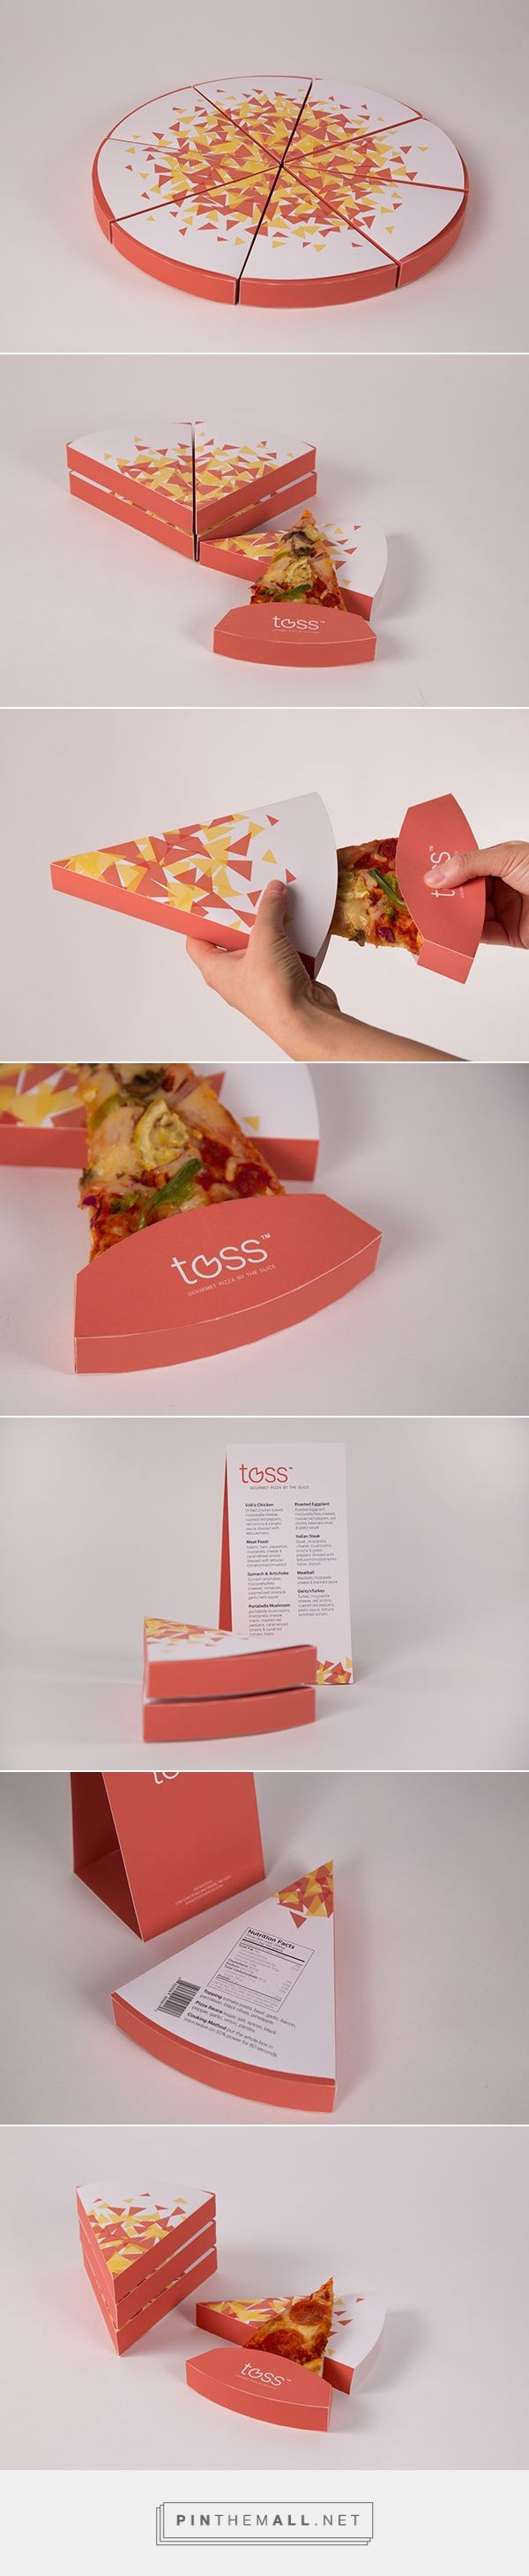 Piece in a piece. Brandshift: Toss - Gourmet Pizza by the Slice designed by Yinan Wang